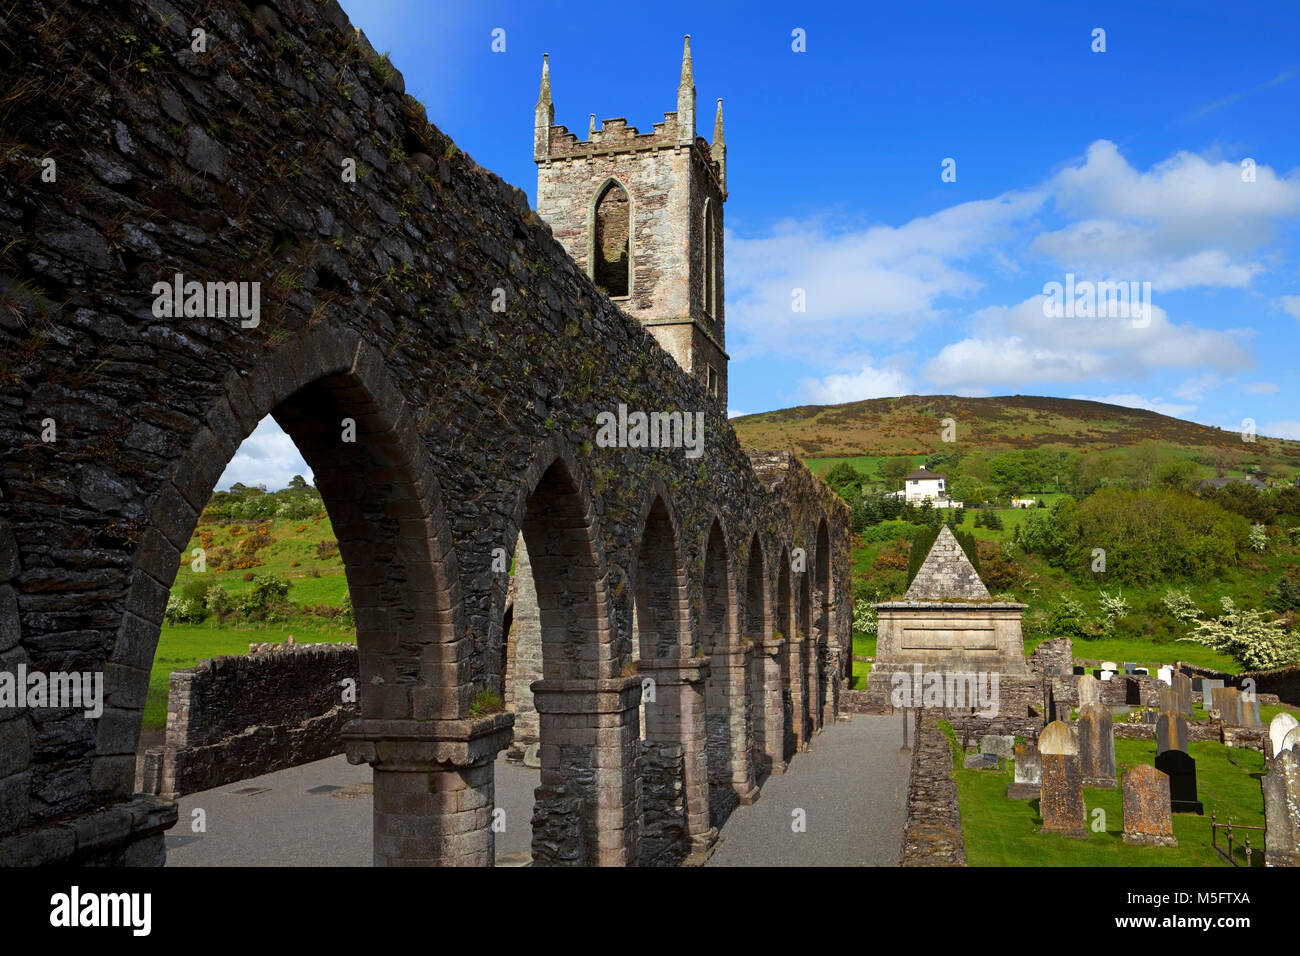 Baltinglass Abbey, Founded as a Cistercian Abbey in 1148, Baltinglass, County Wicklow, Ireland Stock Photo